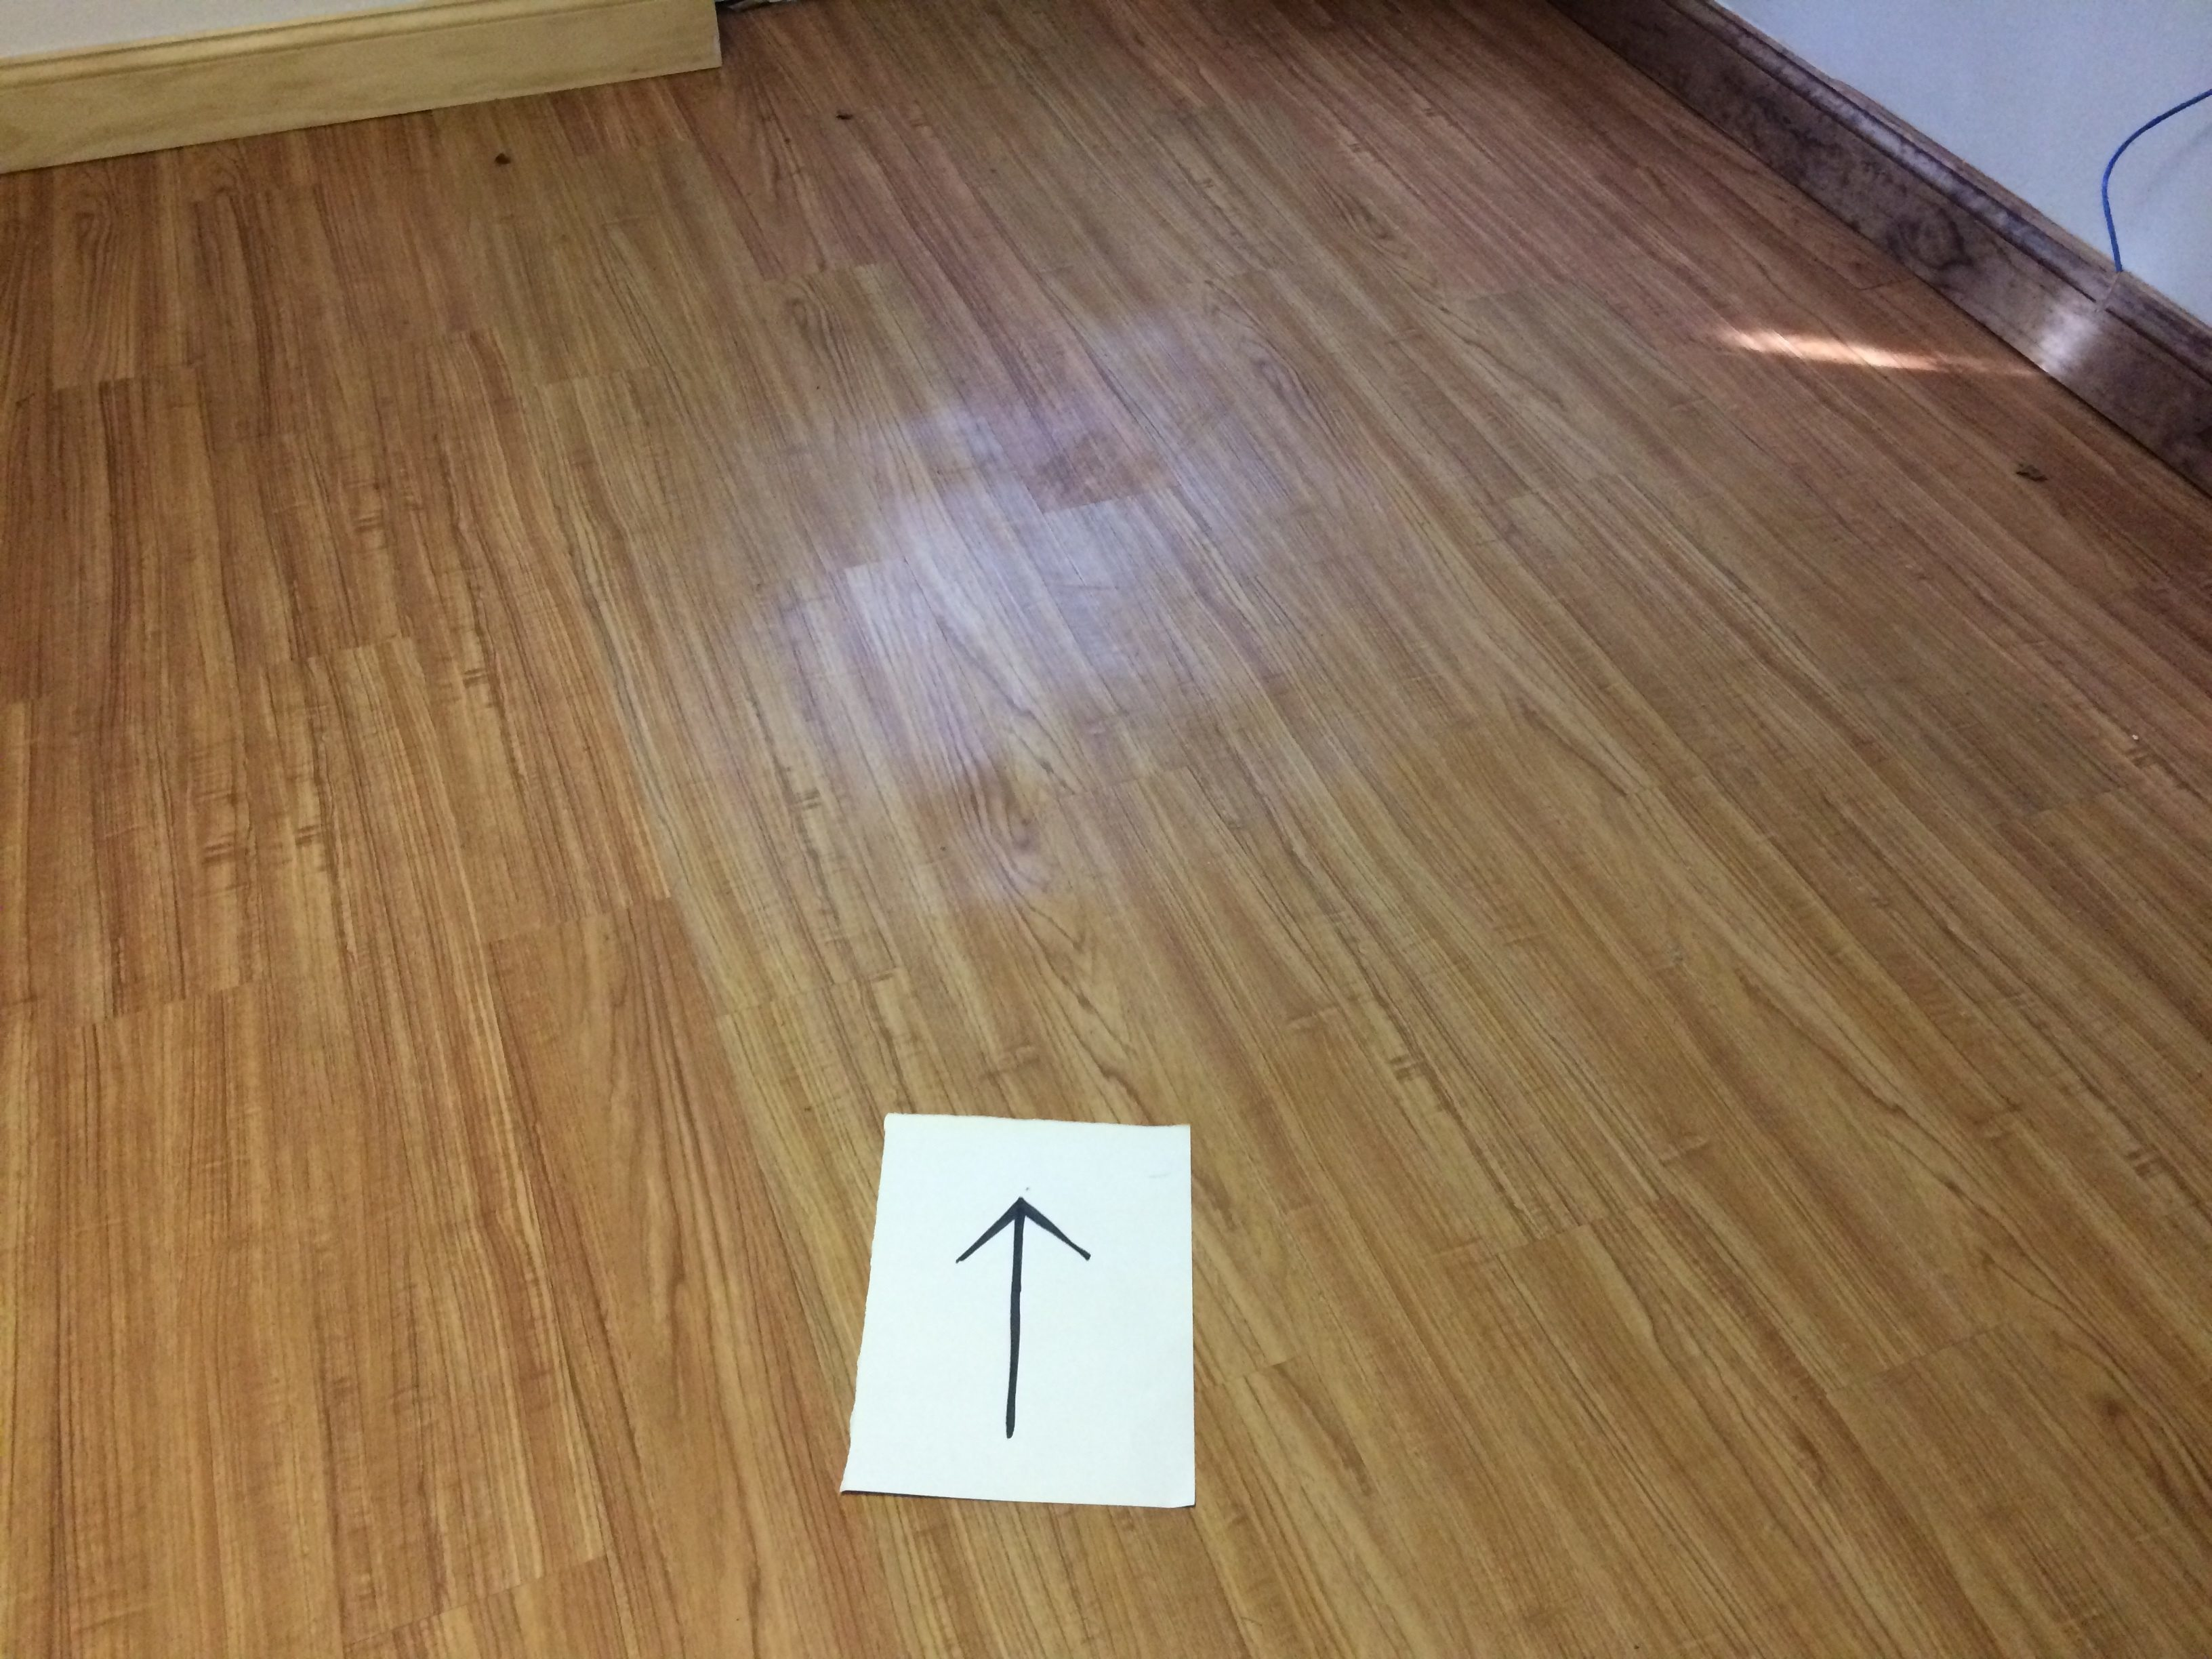 how to cut vinyl plank flooring lengthwise